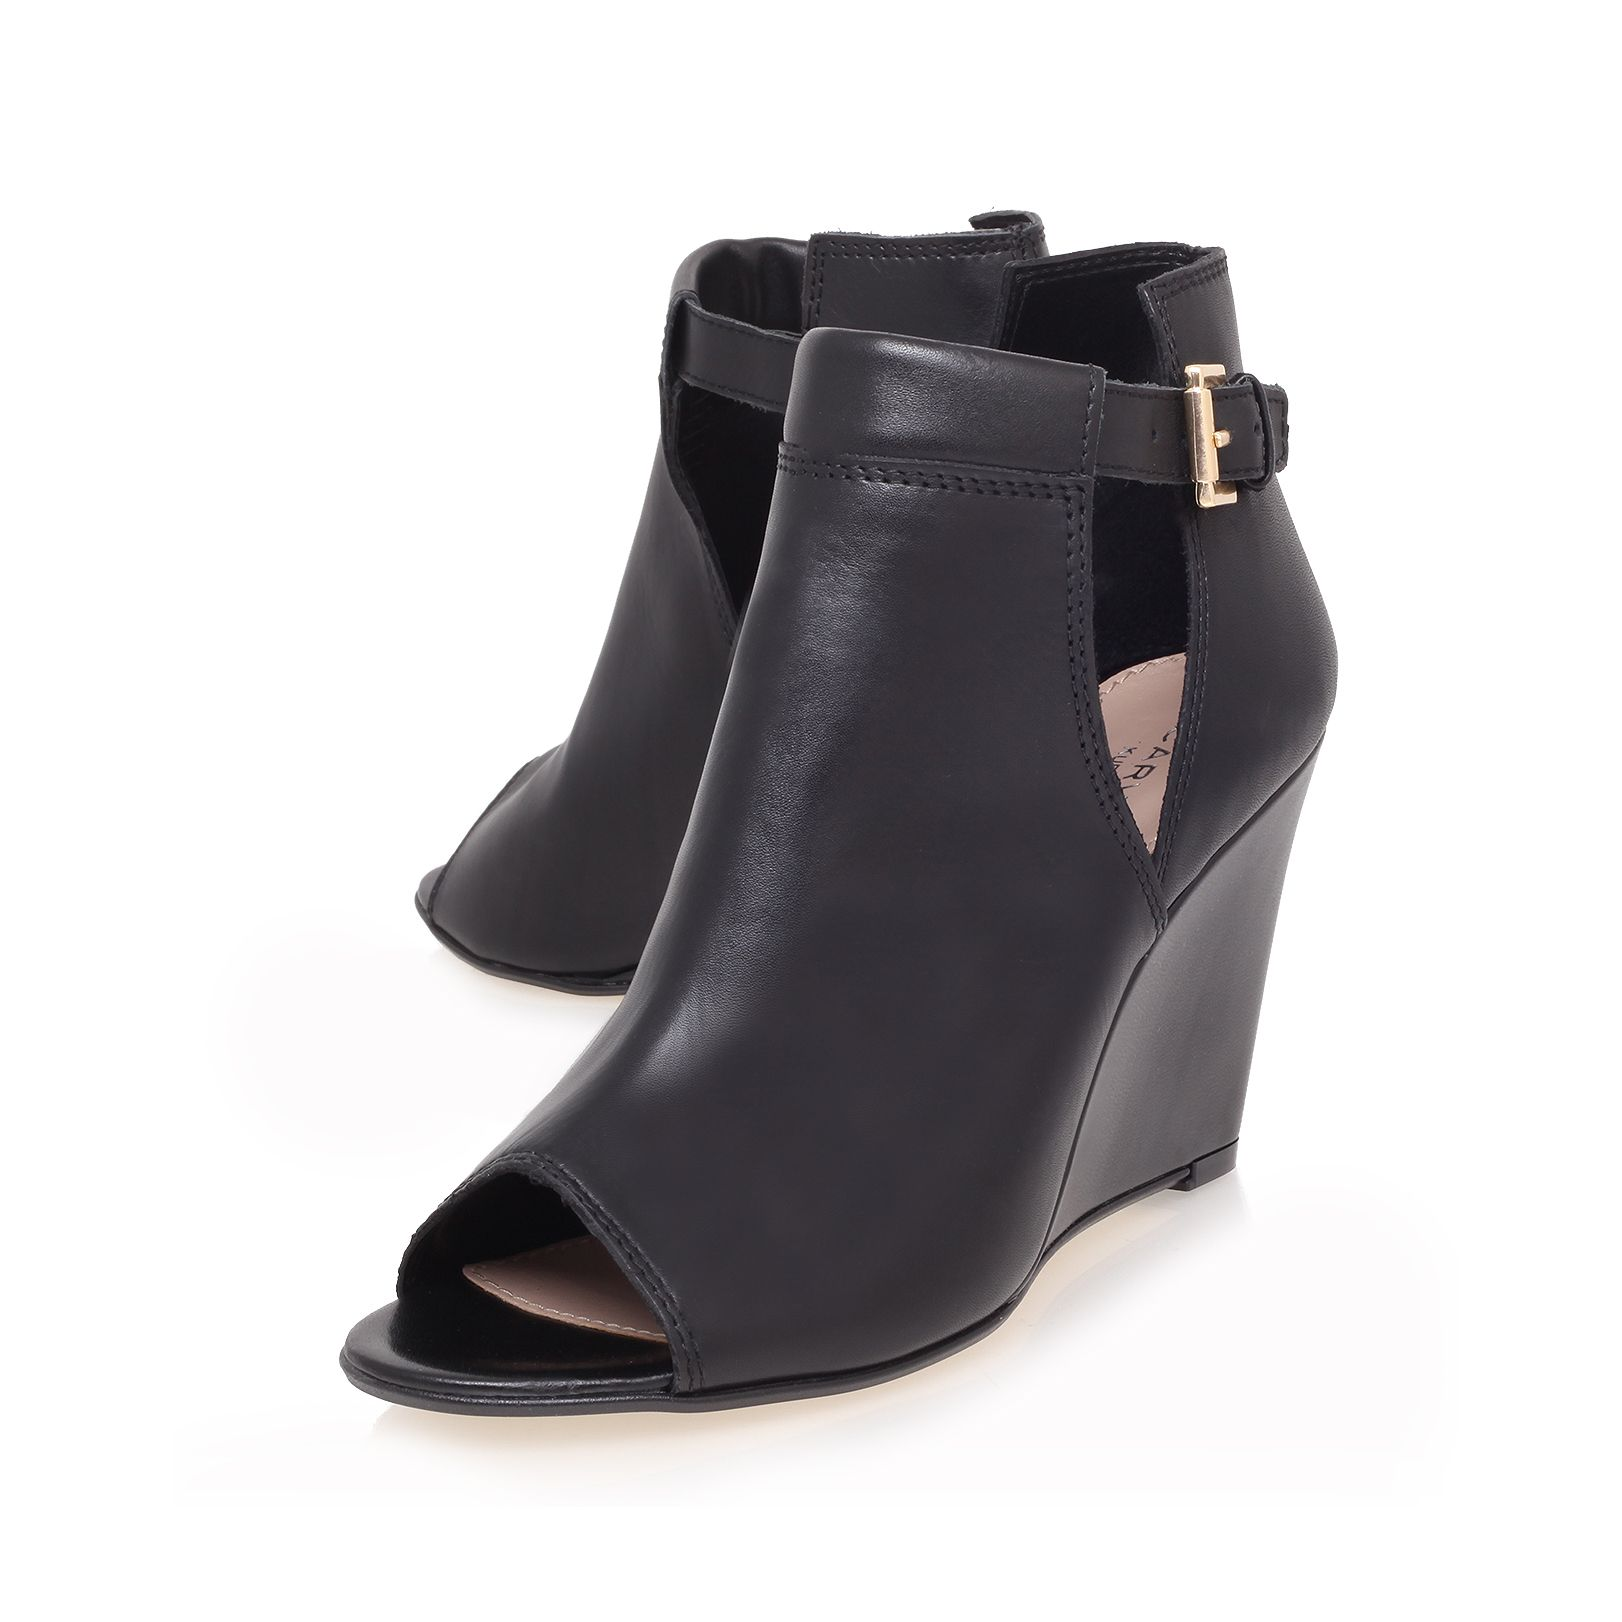 Small high heel wedge ankle boots